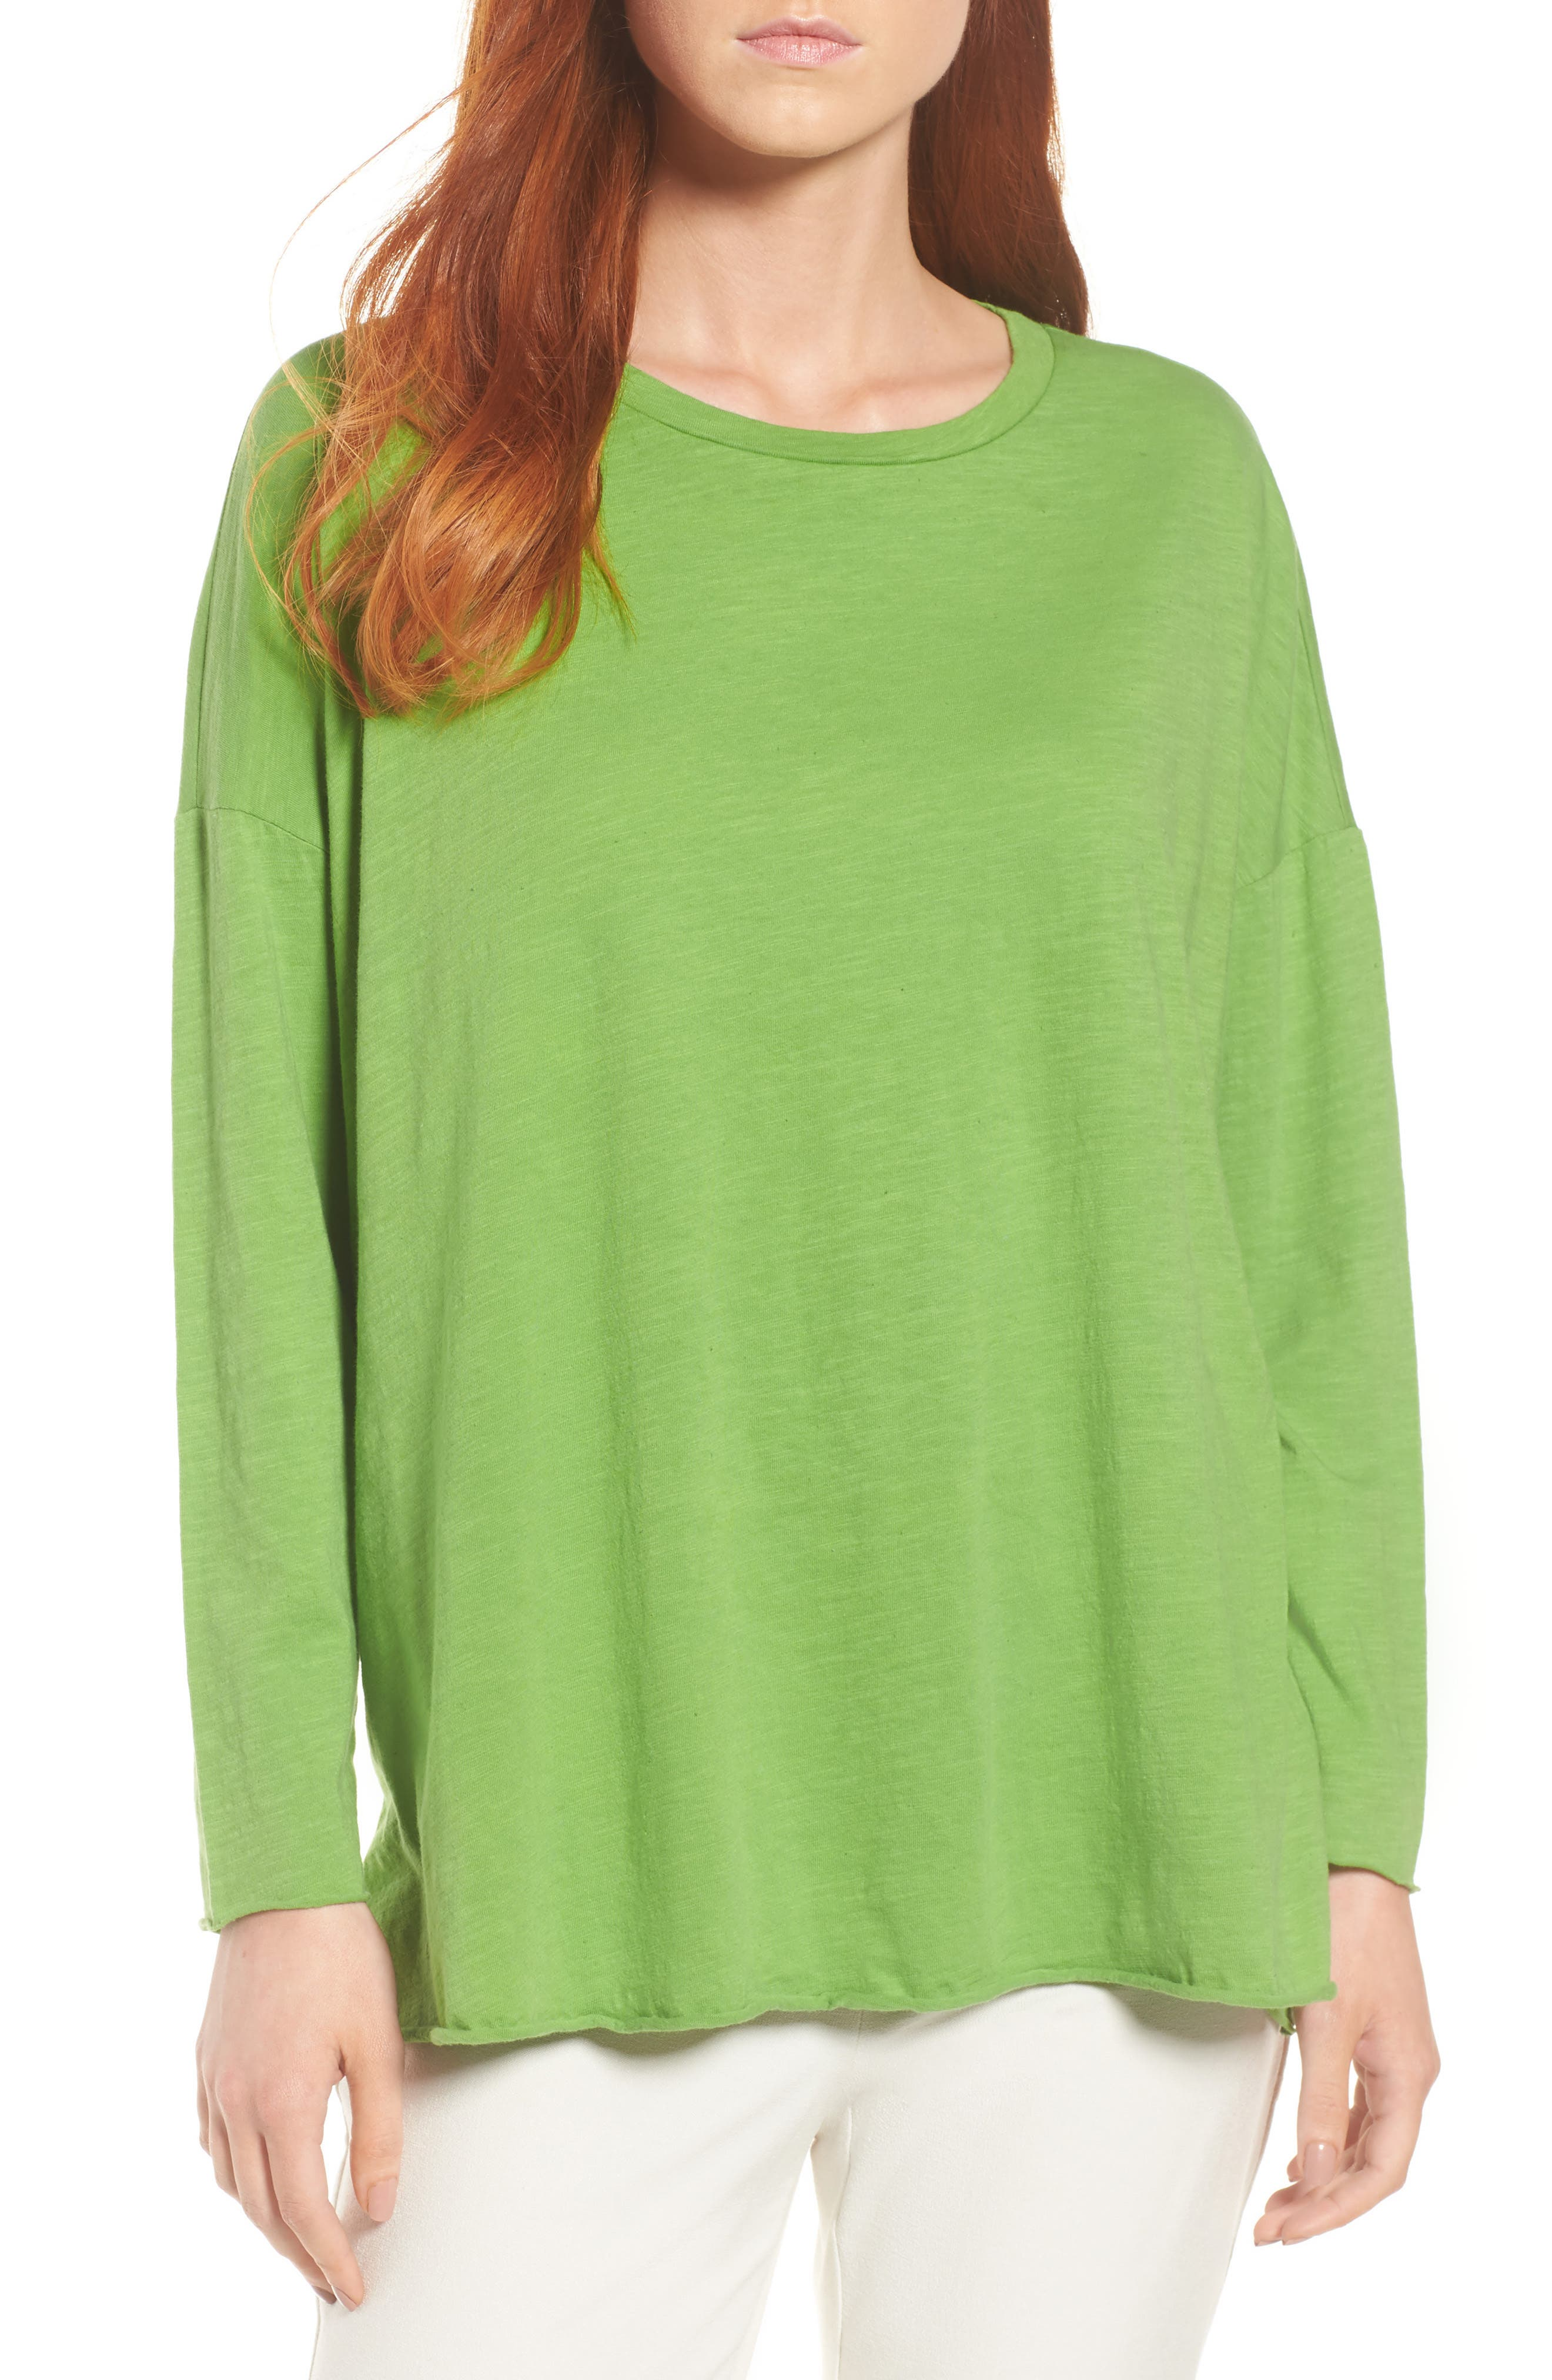 Organic Cotton Knit Top,                         Main,                         color, Apple